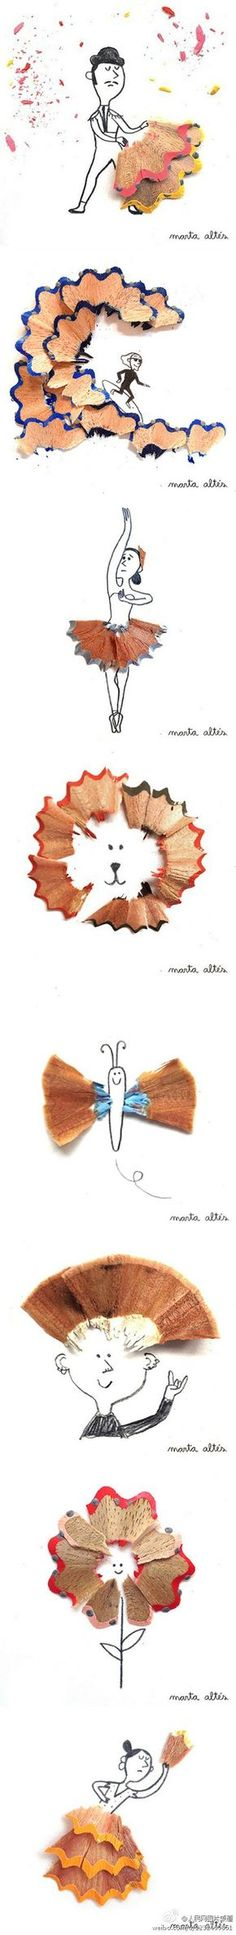 Pencil shavings. This would be fun for the kids to try! More examples on the site.